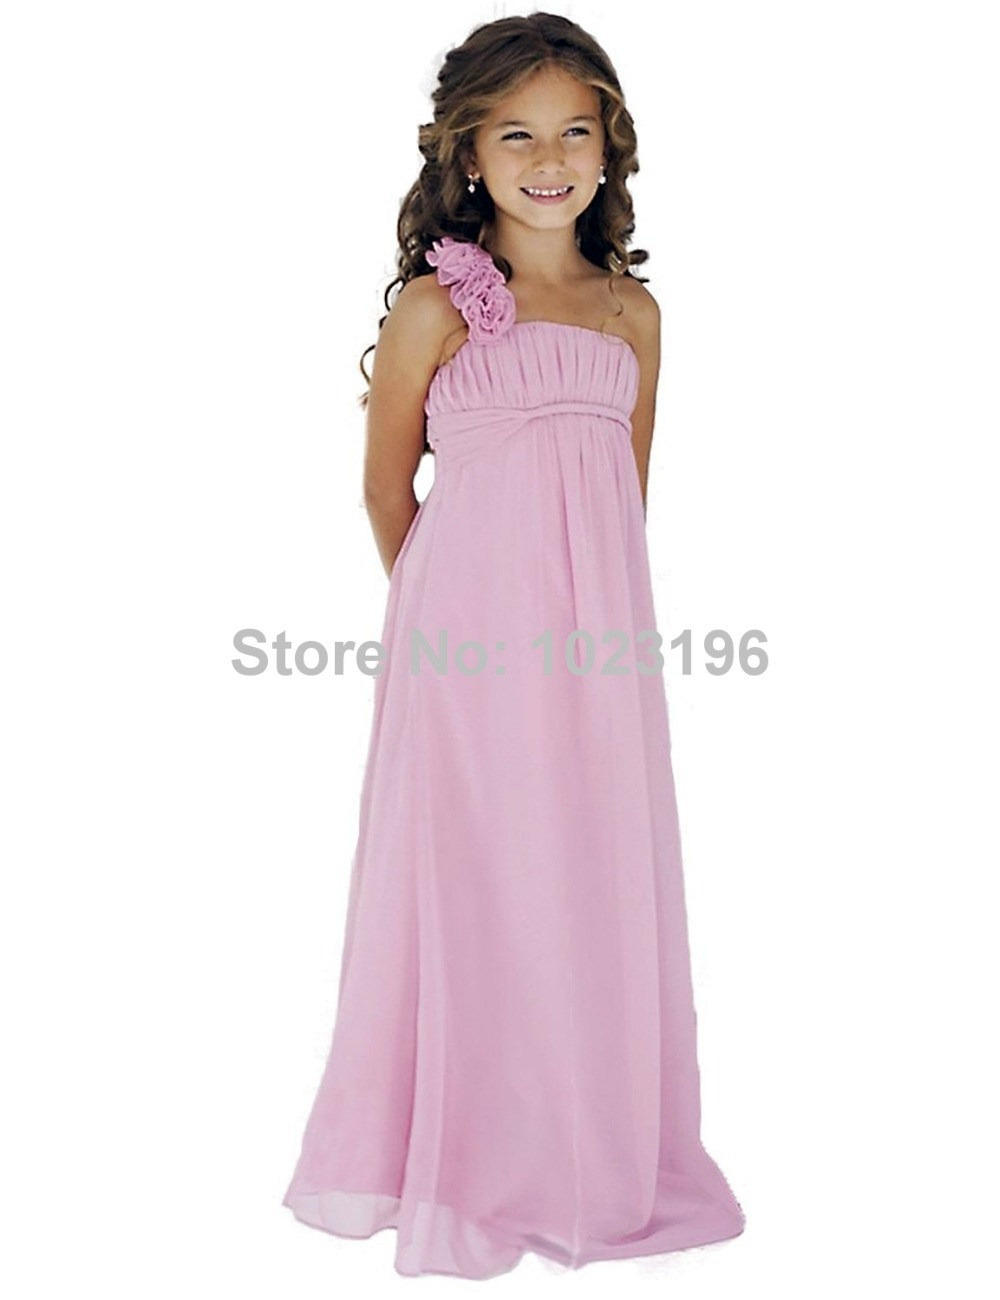 2015 real simple pink chiffon long flower girl dresses for for Flower girl dress for beach wedding